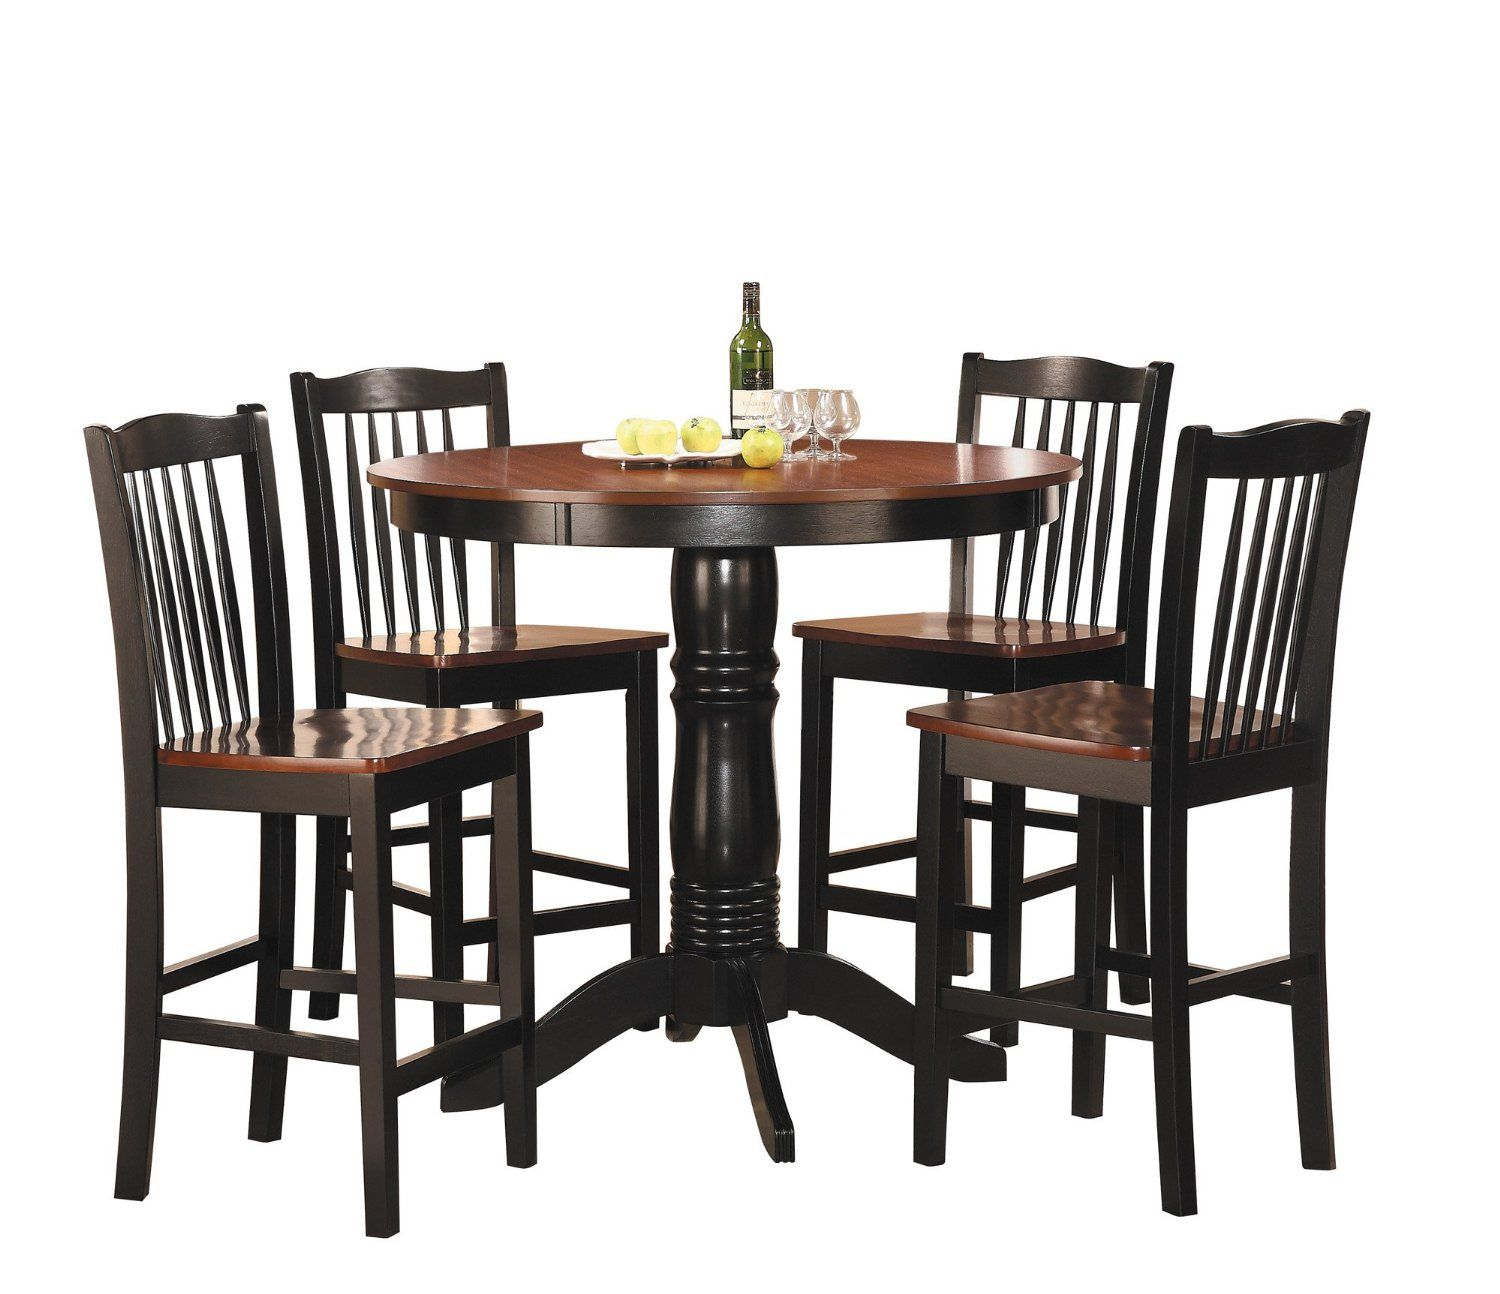 Homelegance 5 Piece Round Counter Height Dining Set